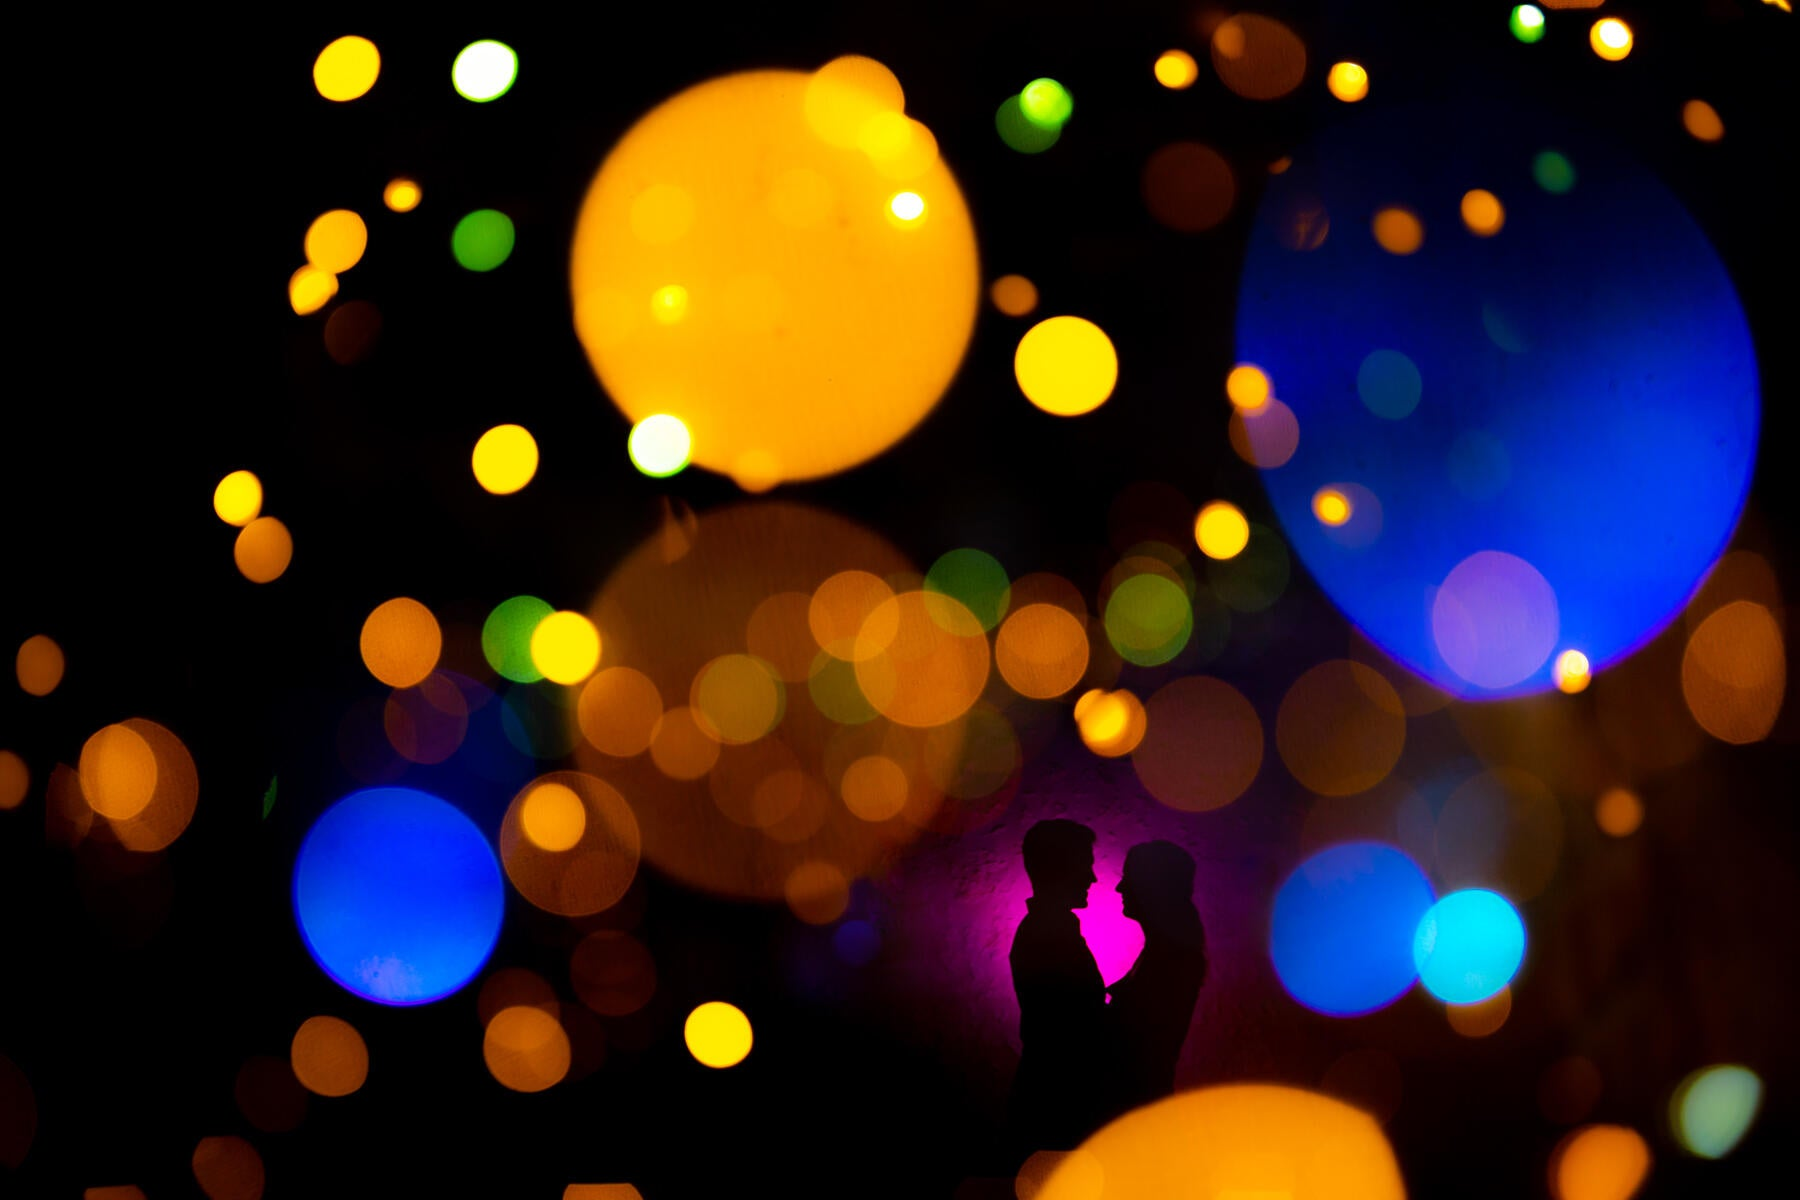 brightly colored lights in the image with silhouette of two people facing each other